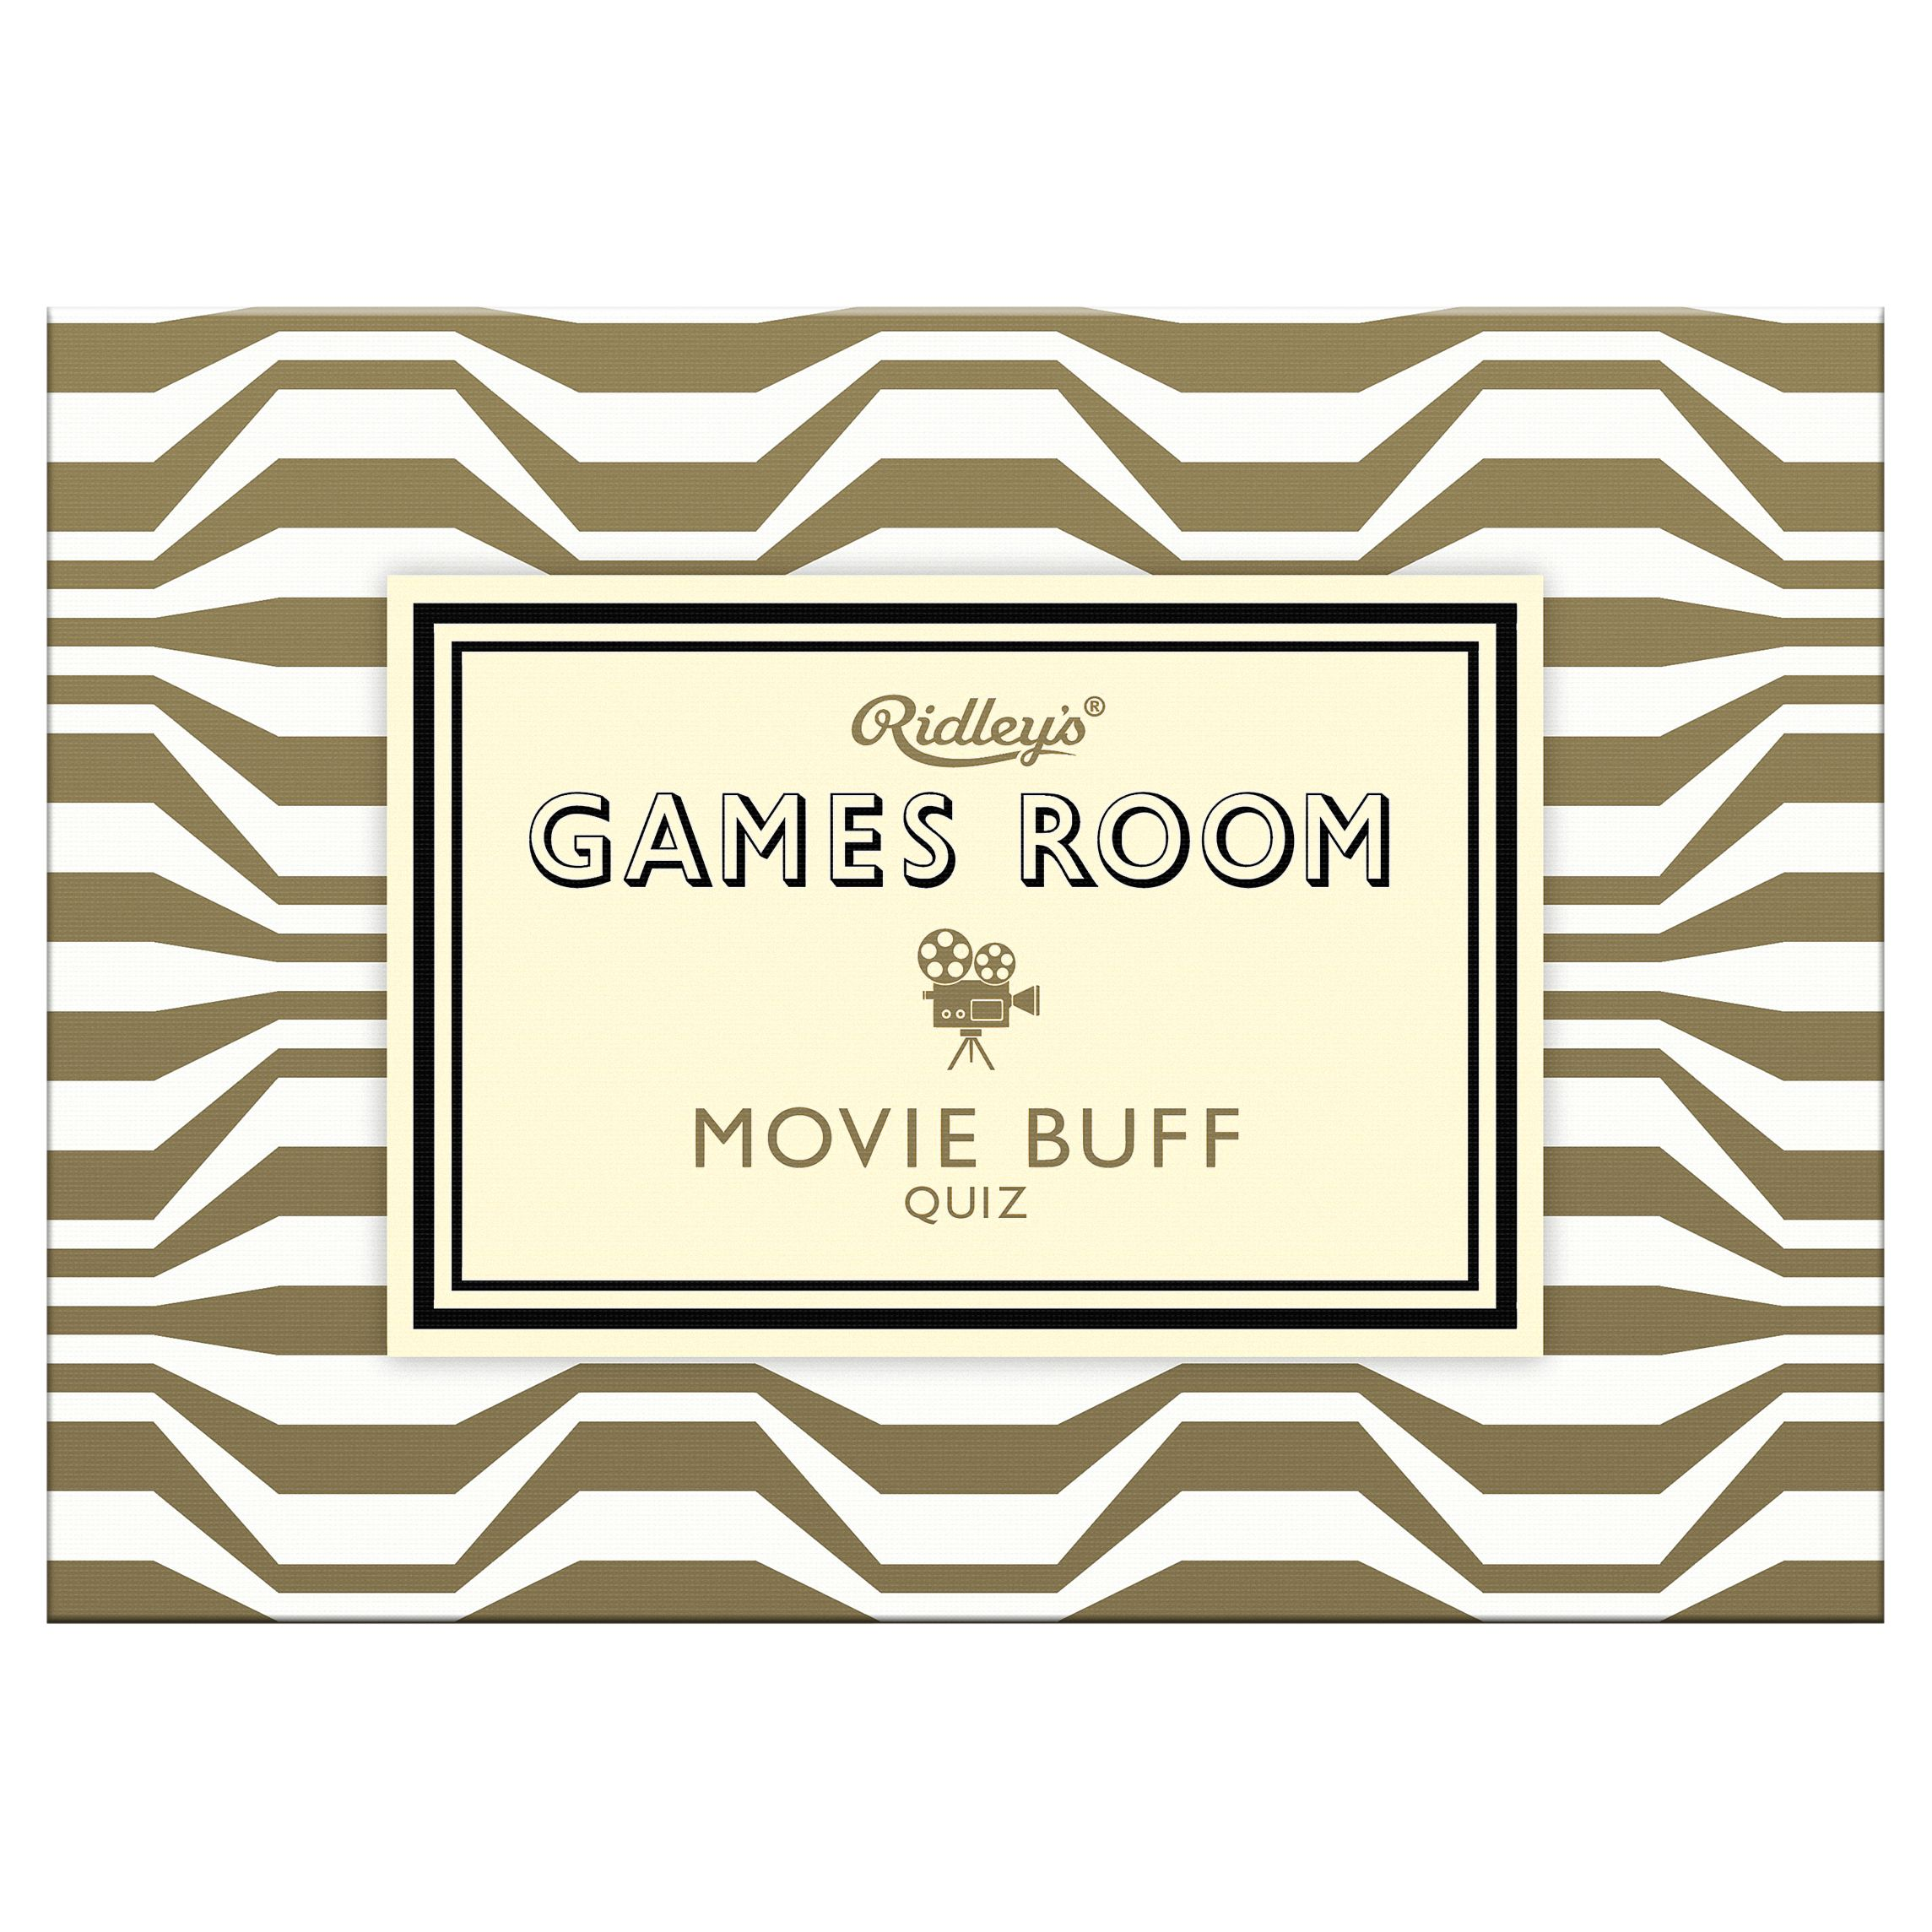 Ridley's Ridley's Games Room Movie Buff Game